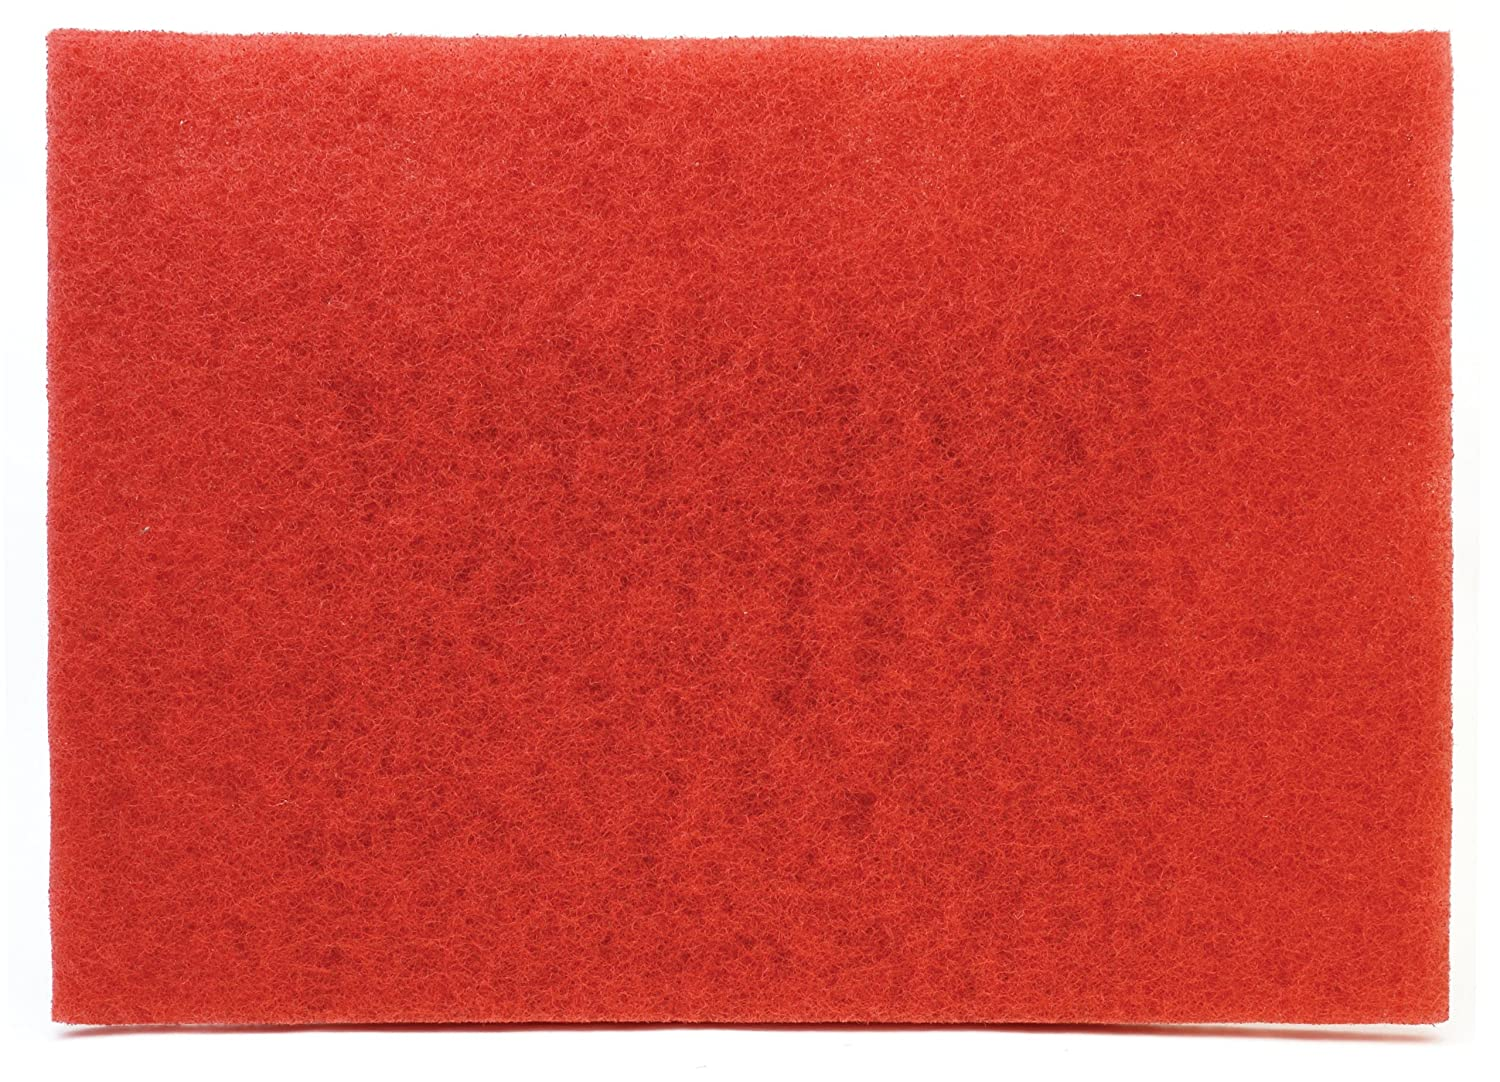 """3M Buffer Pad 5100, Red, 12"""" x 18"""" (Case of 20)"""